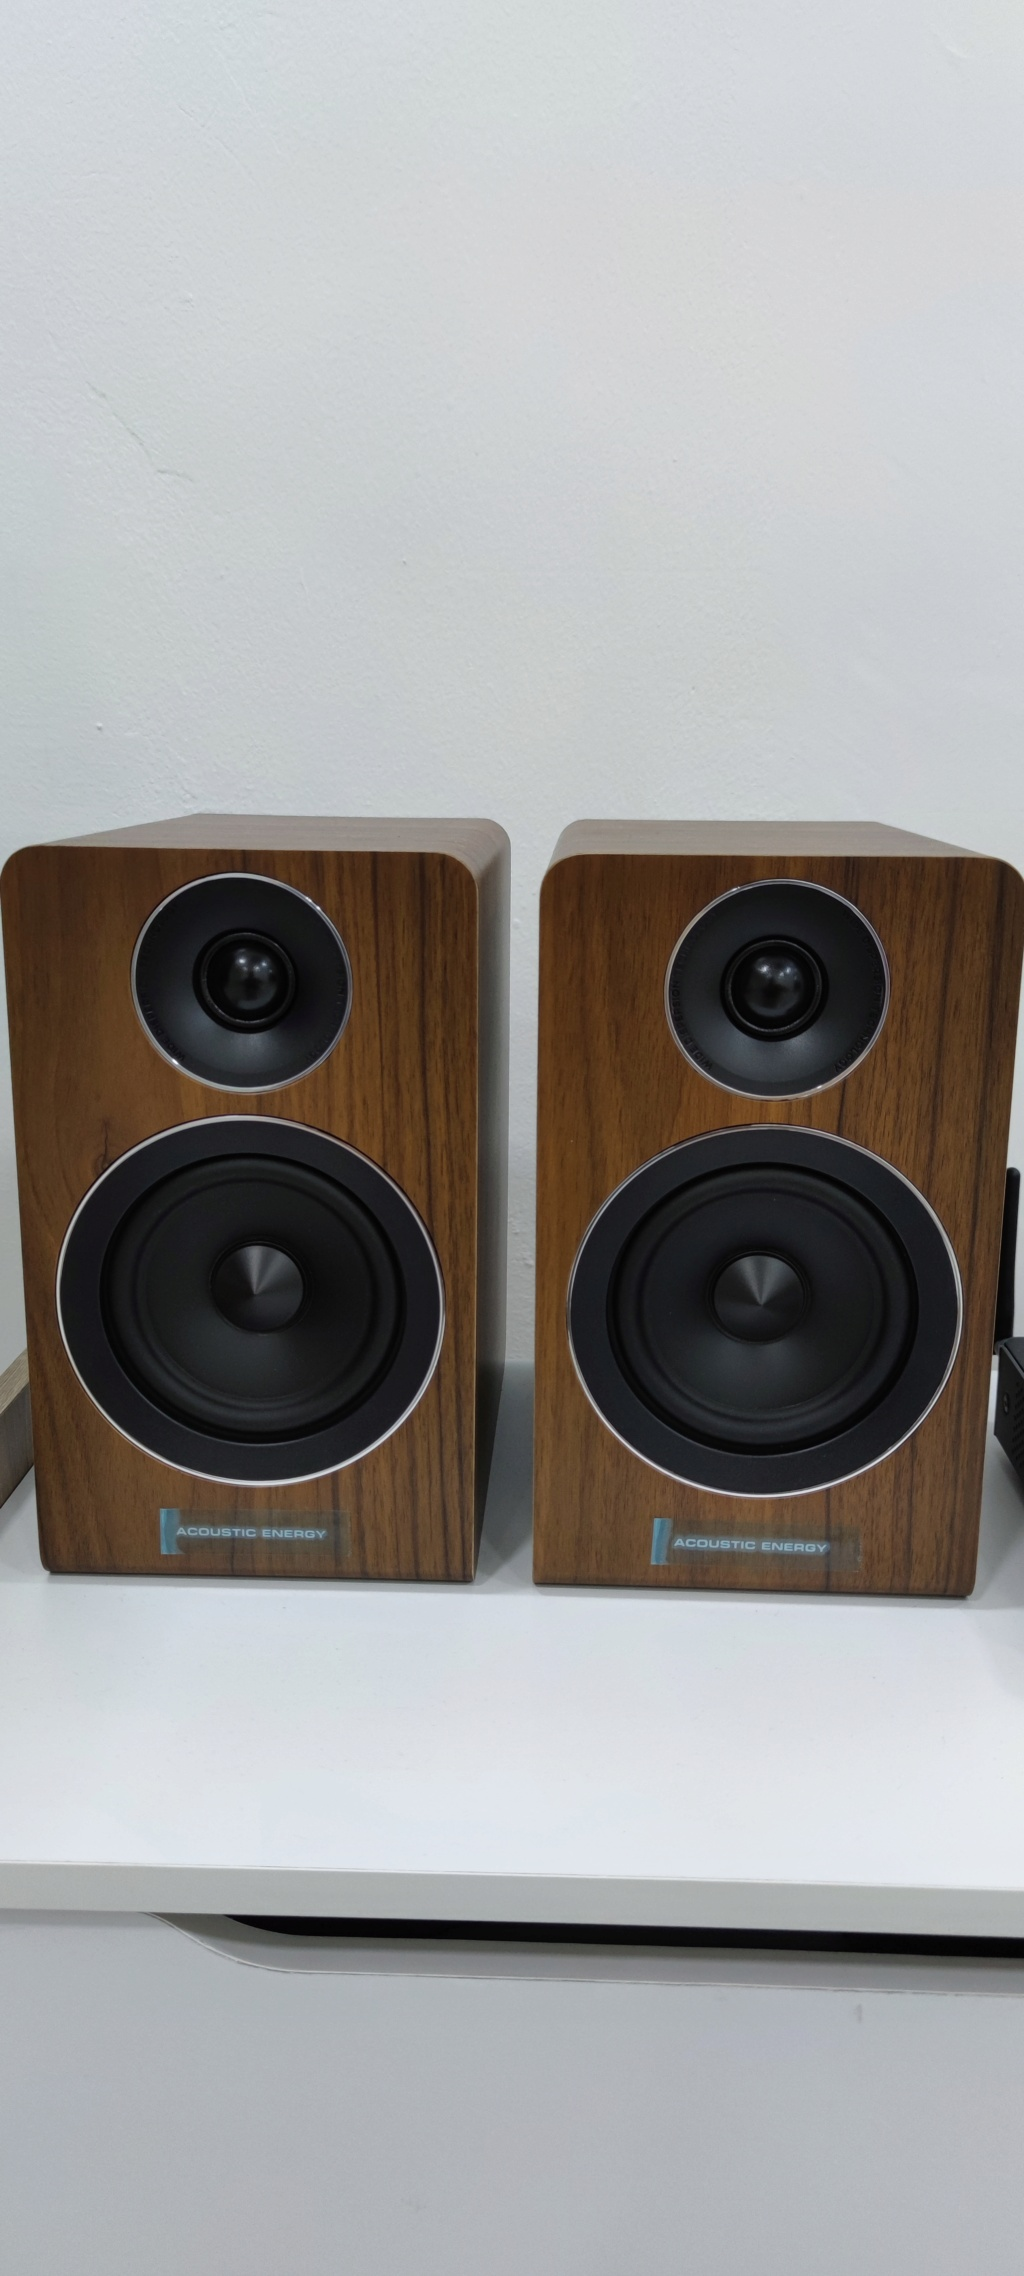 Yamaha A-S801 integrated amplifier and acoustic energy AE100 speaker (all with box) Img_2015